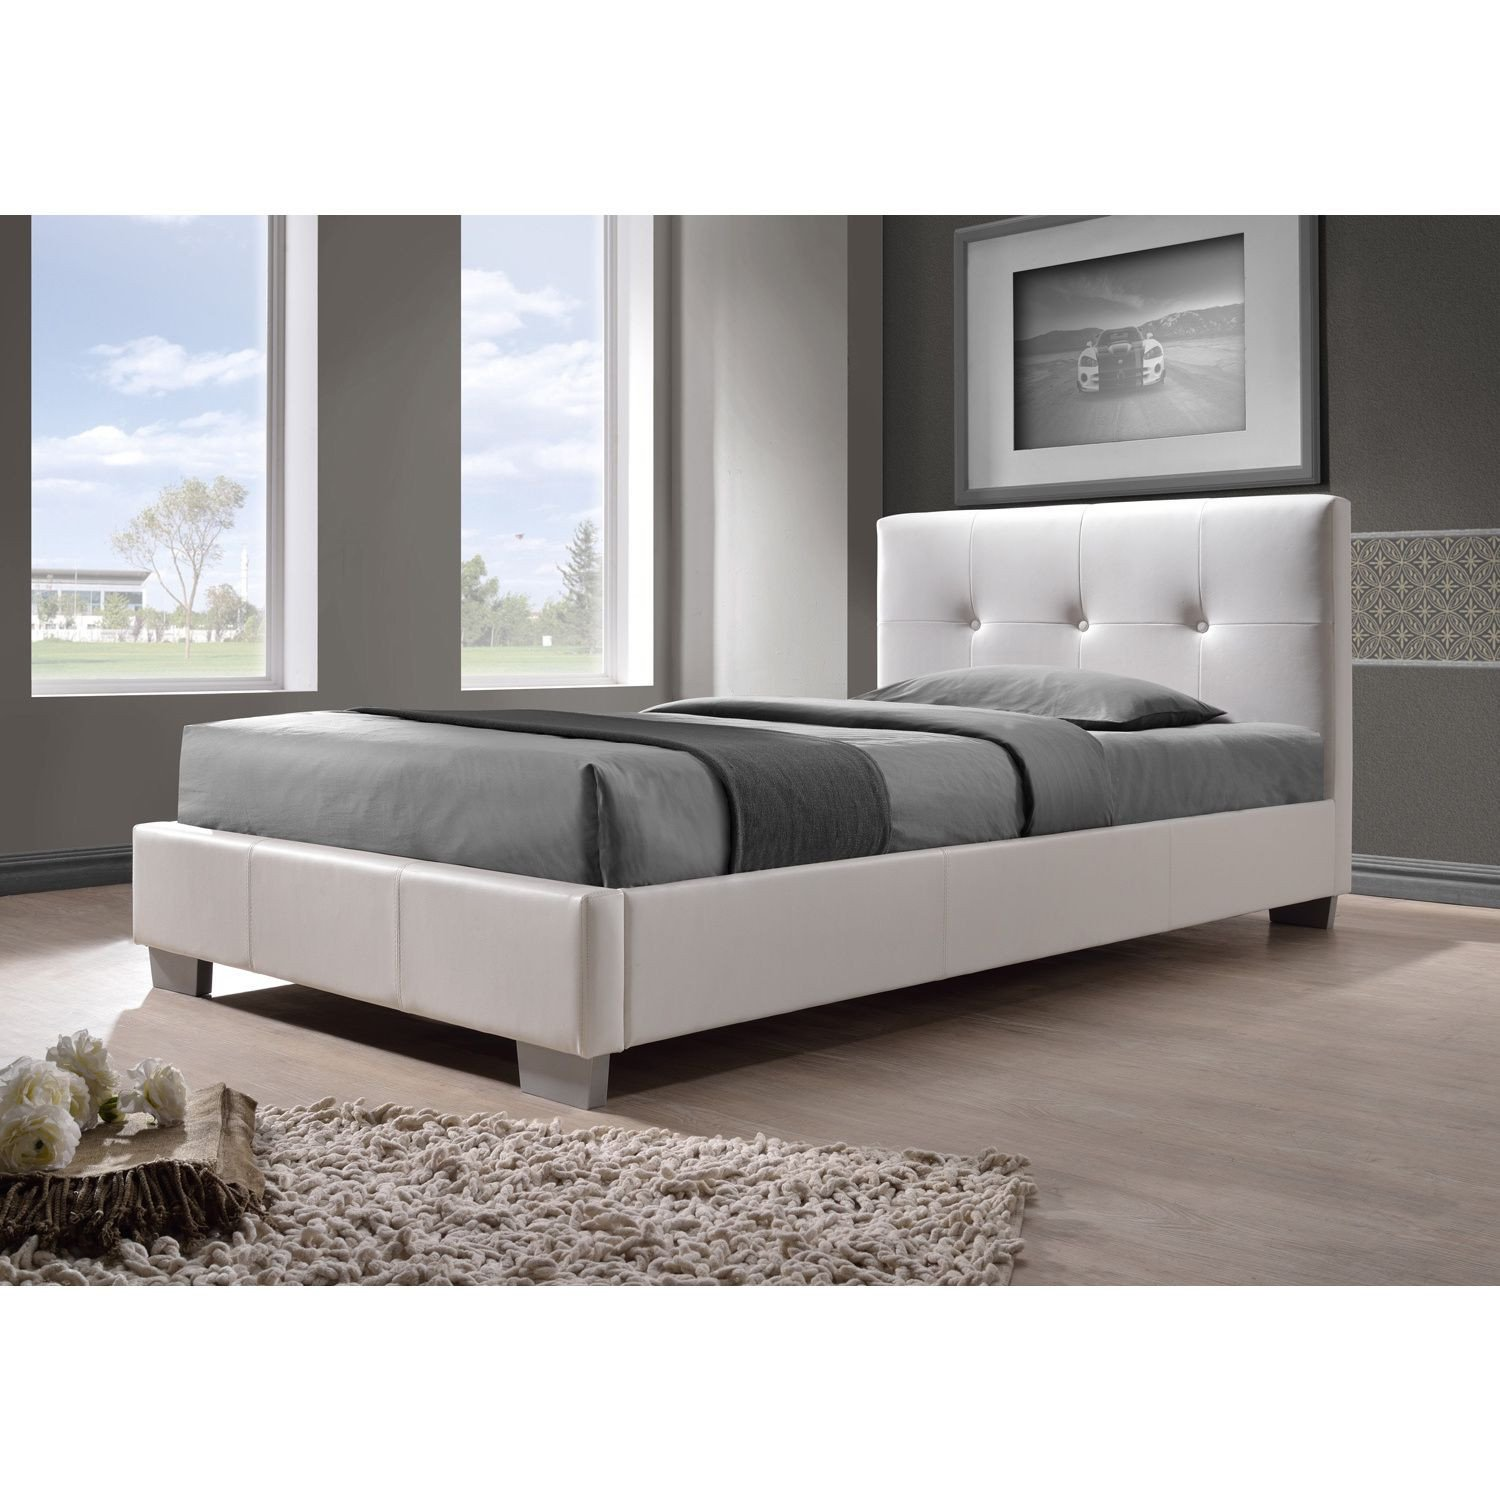 Lighted Headboard Bedroom Set Luxury This Twin Size Bed S Sleek Lines and Minimalist button